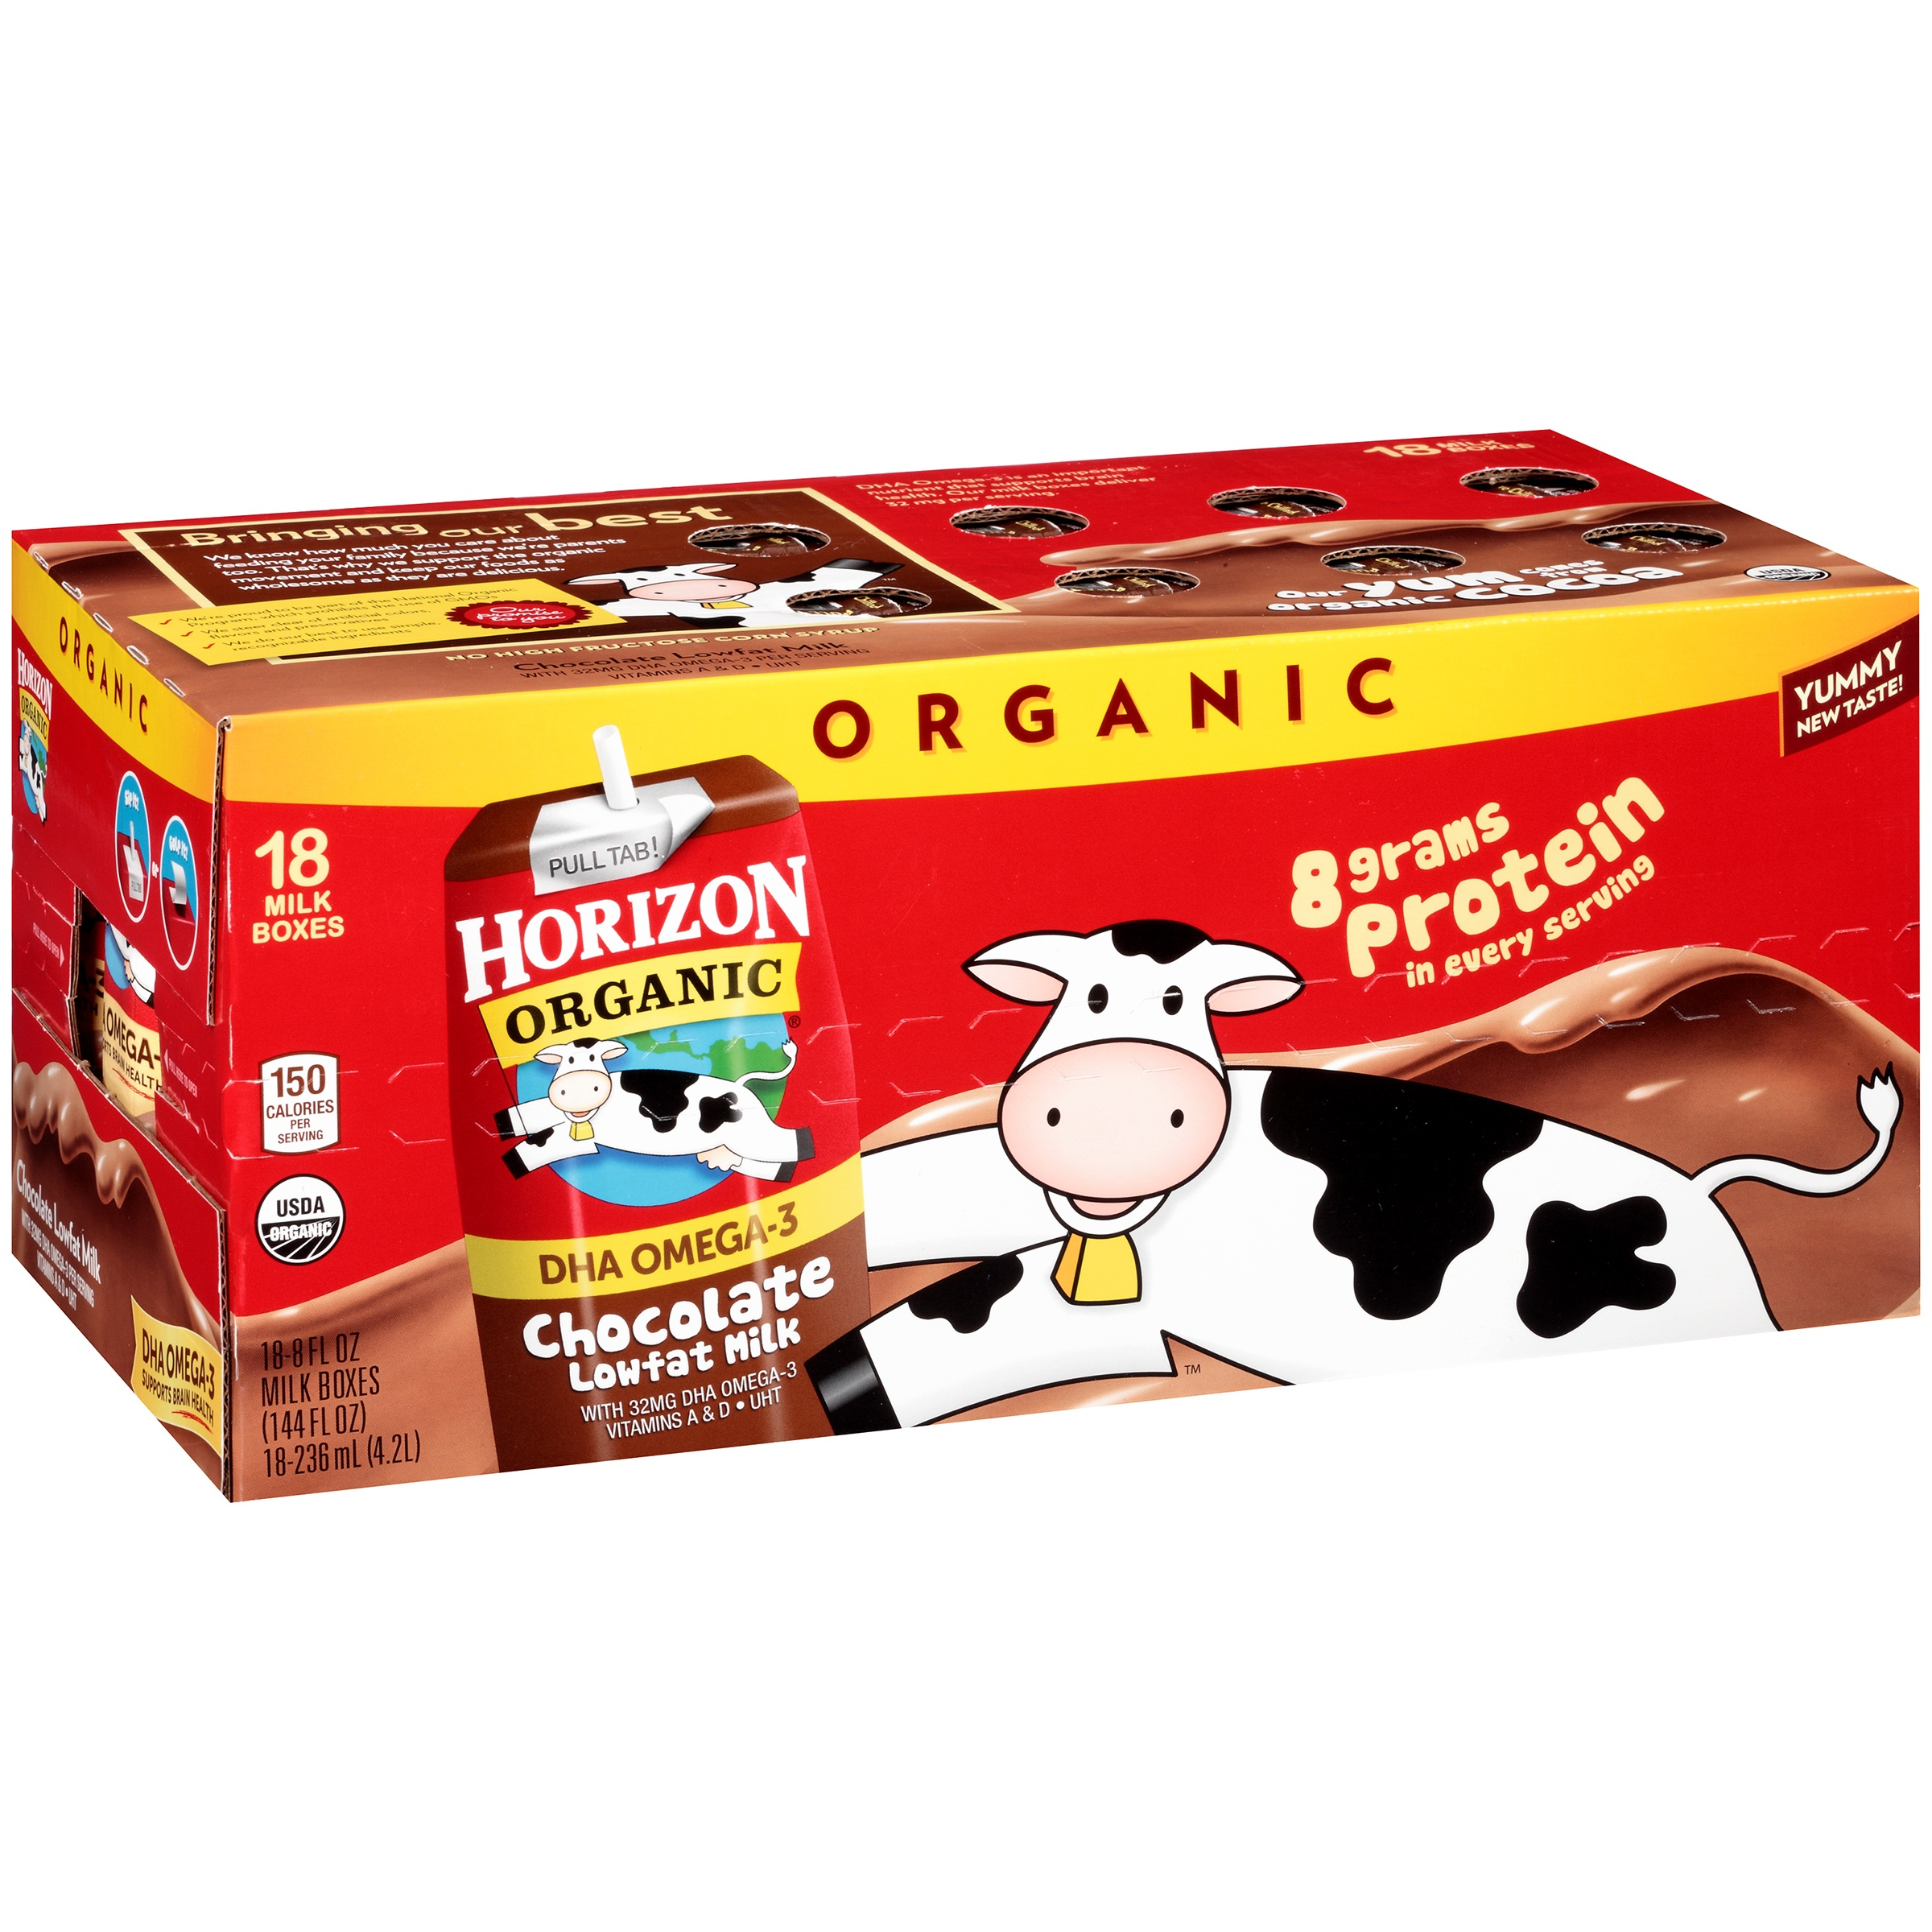 Horizon Organic Chocolate Low-Fat Milk Boxes, 8 fl oz, 18 Count